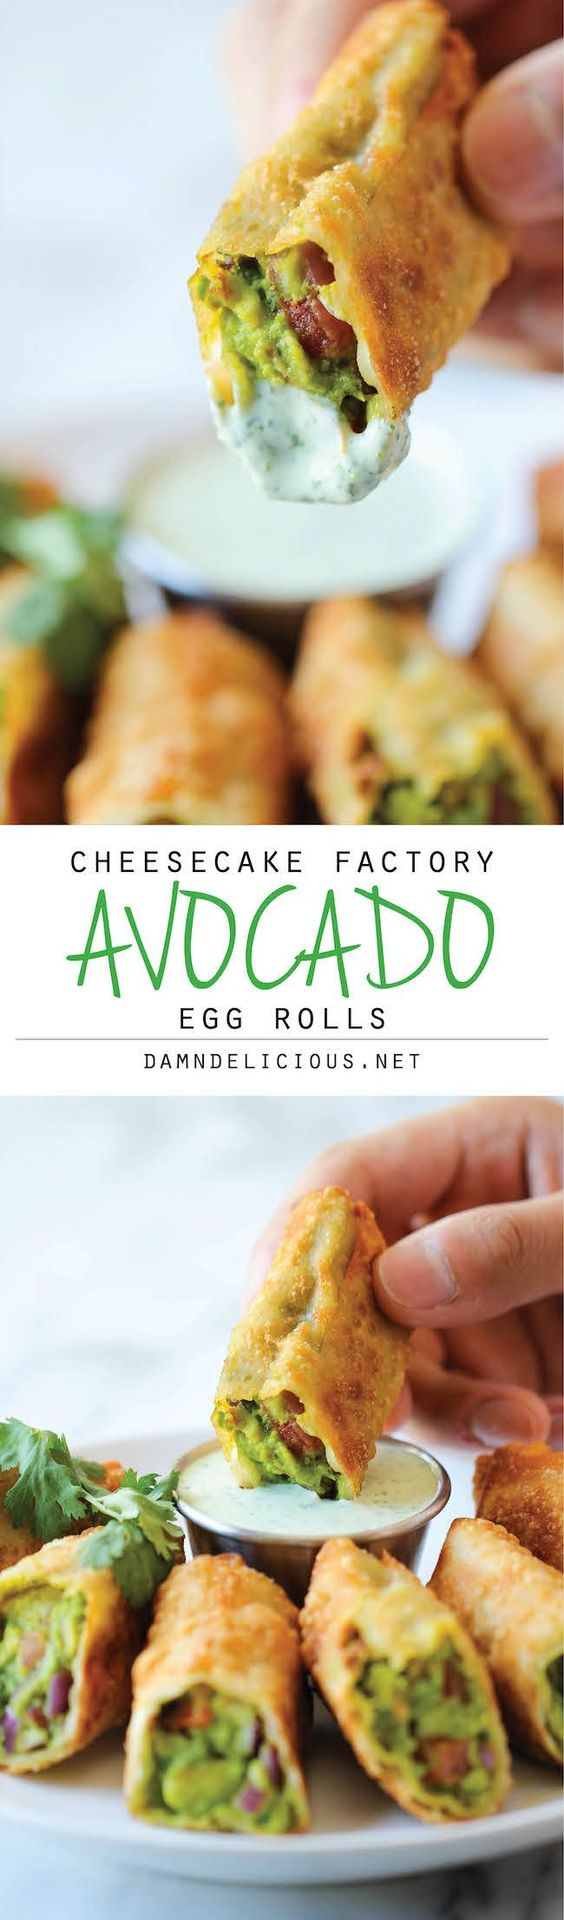 Cheesecake Factory Avocado Egg Rolls - One of my FAV's but I love the easy Tamarind Thai sauce w these!